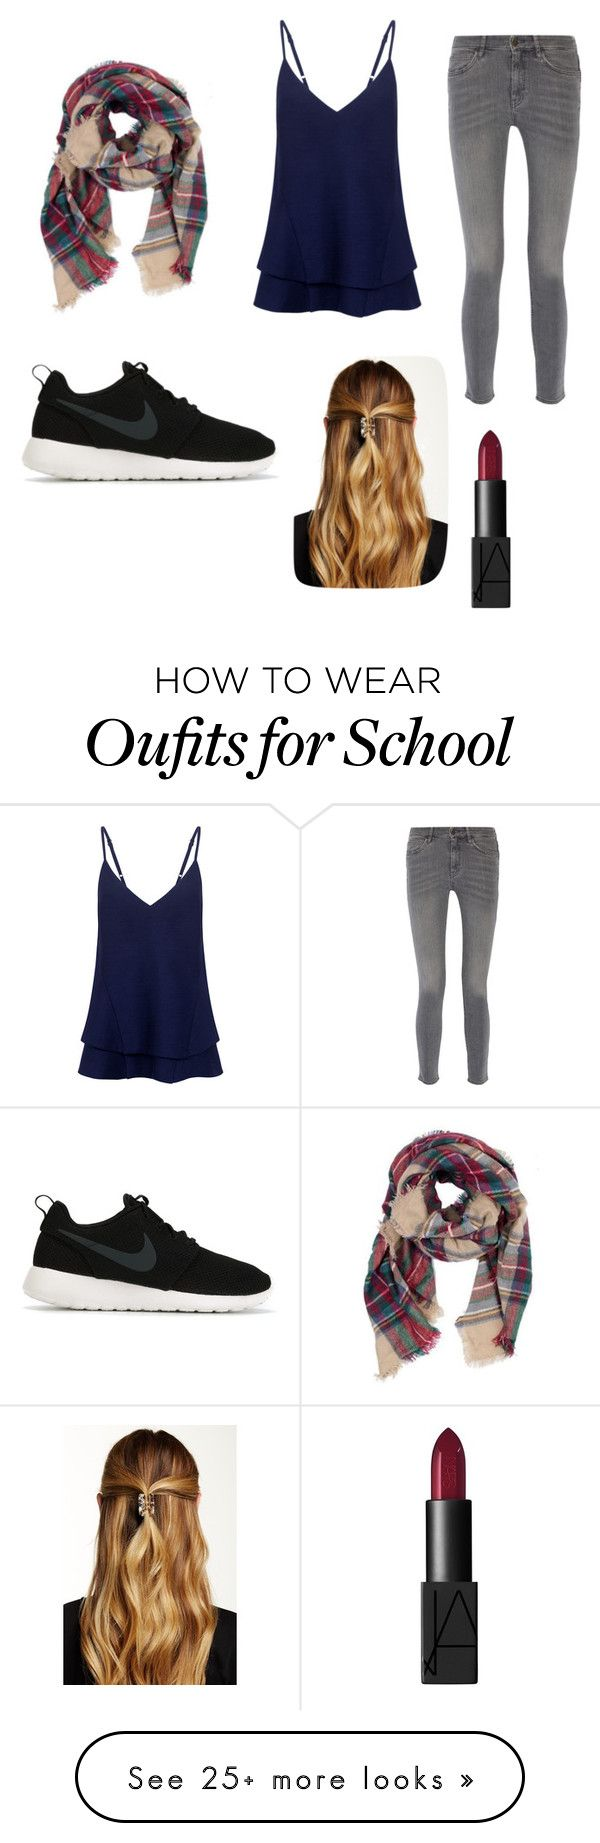 """Casual; school; cute"" by krasmussen2002 on Polyvore featuring C/MEO COLLECTIVE, MiH Jeans, NIKE, Natasha Accessories and NARS Cosmetics"